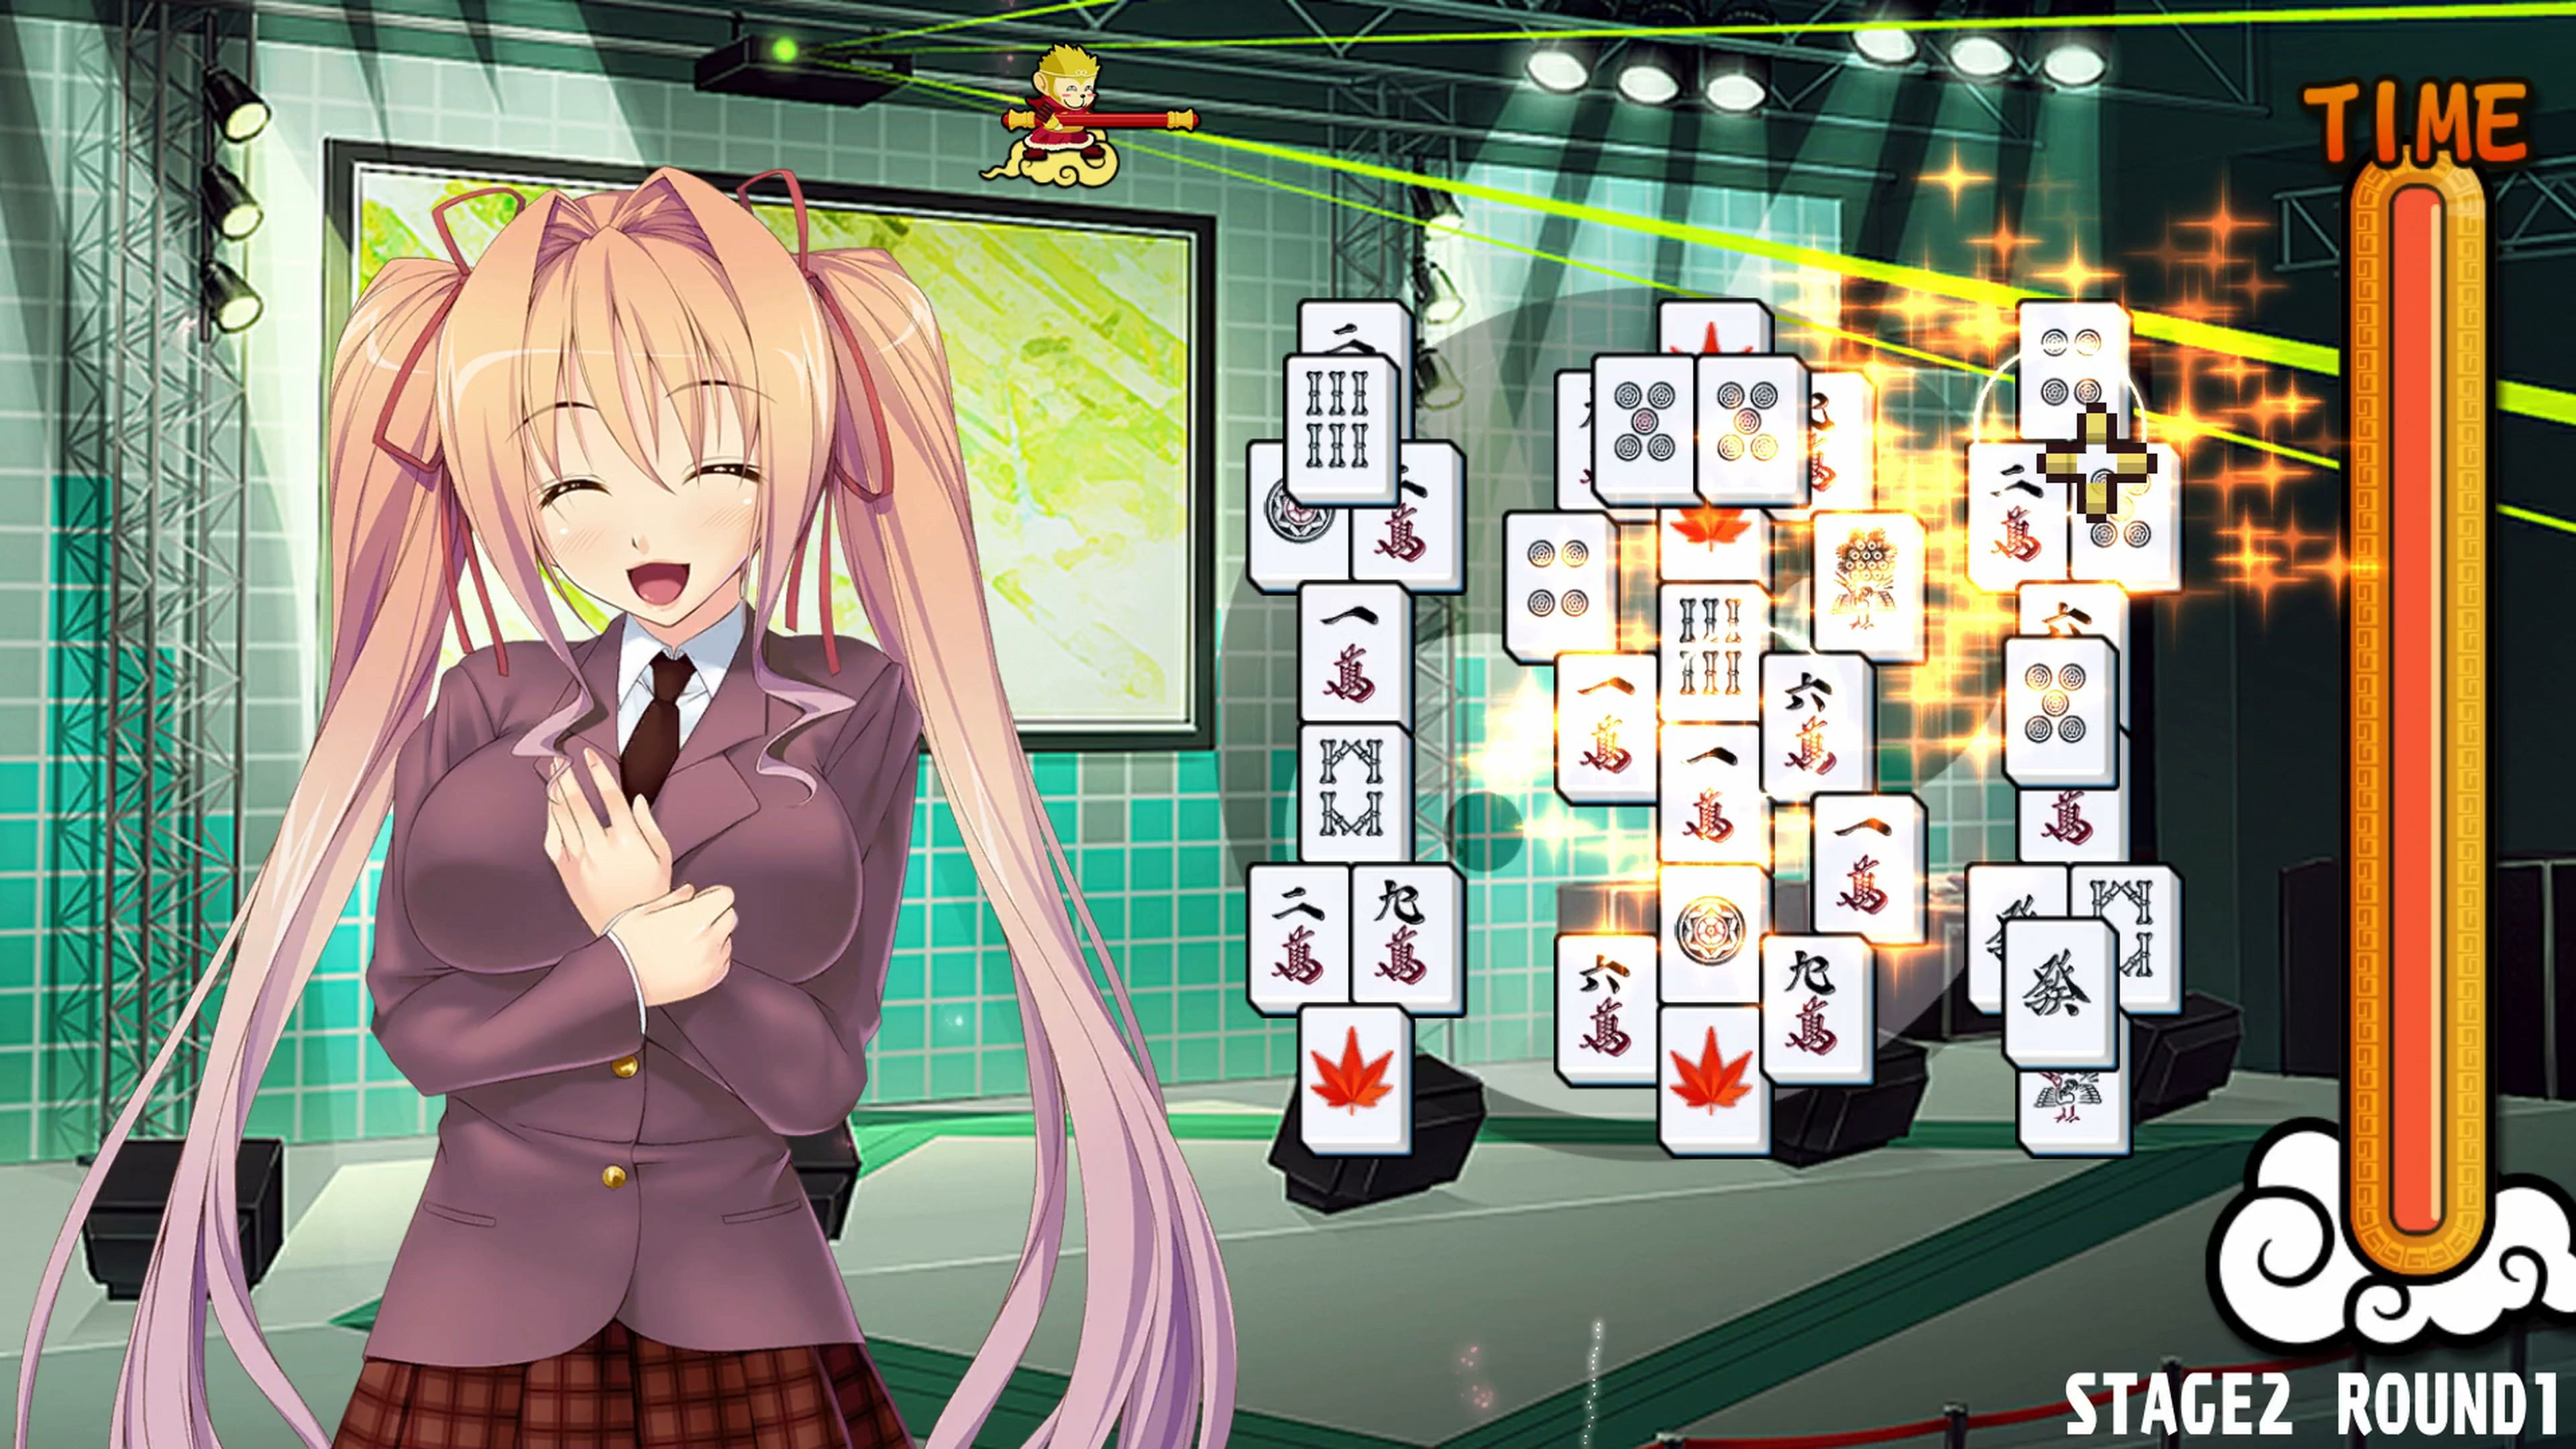 Скриншот №2 к Pretty Girls Mahjong Solitaire PS4 and PS5